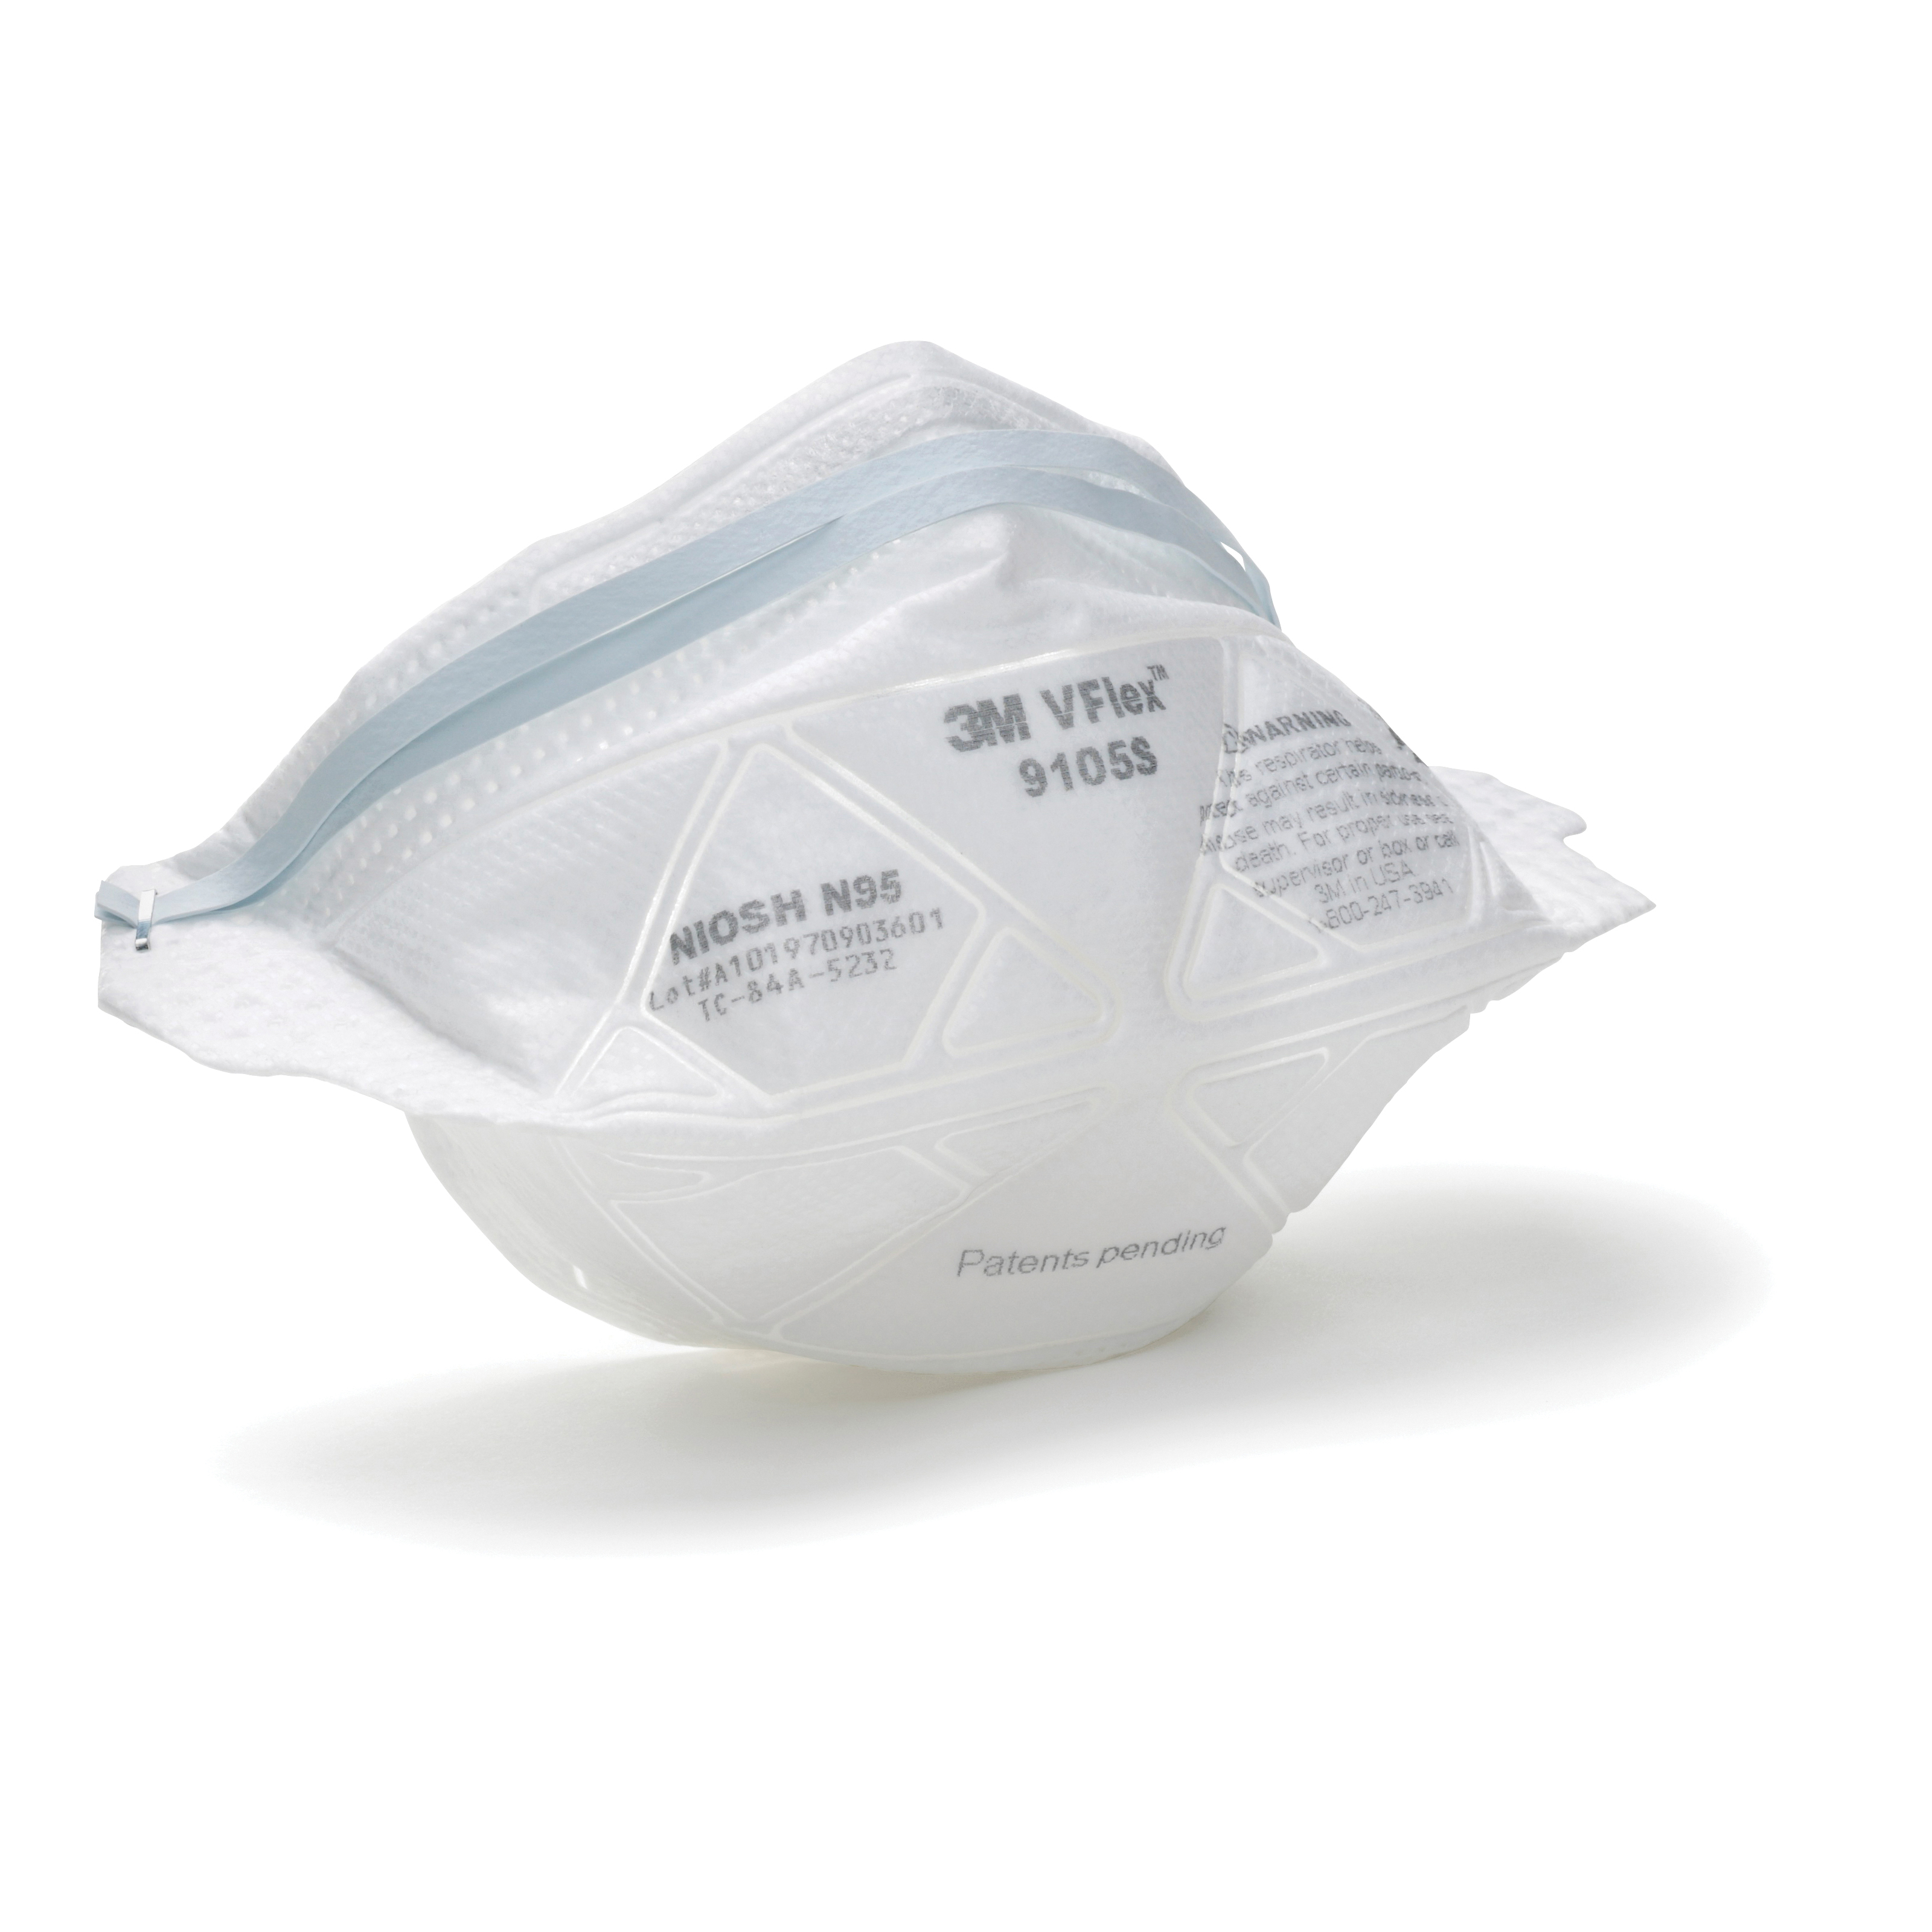 3M™ 8515 Cup Style Disposable Valved Particulate Welding Respirator, Standard, Resists: Non-Oil Based Particles